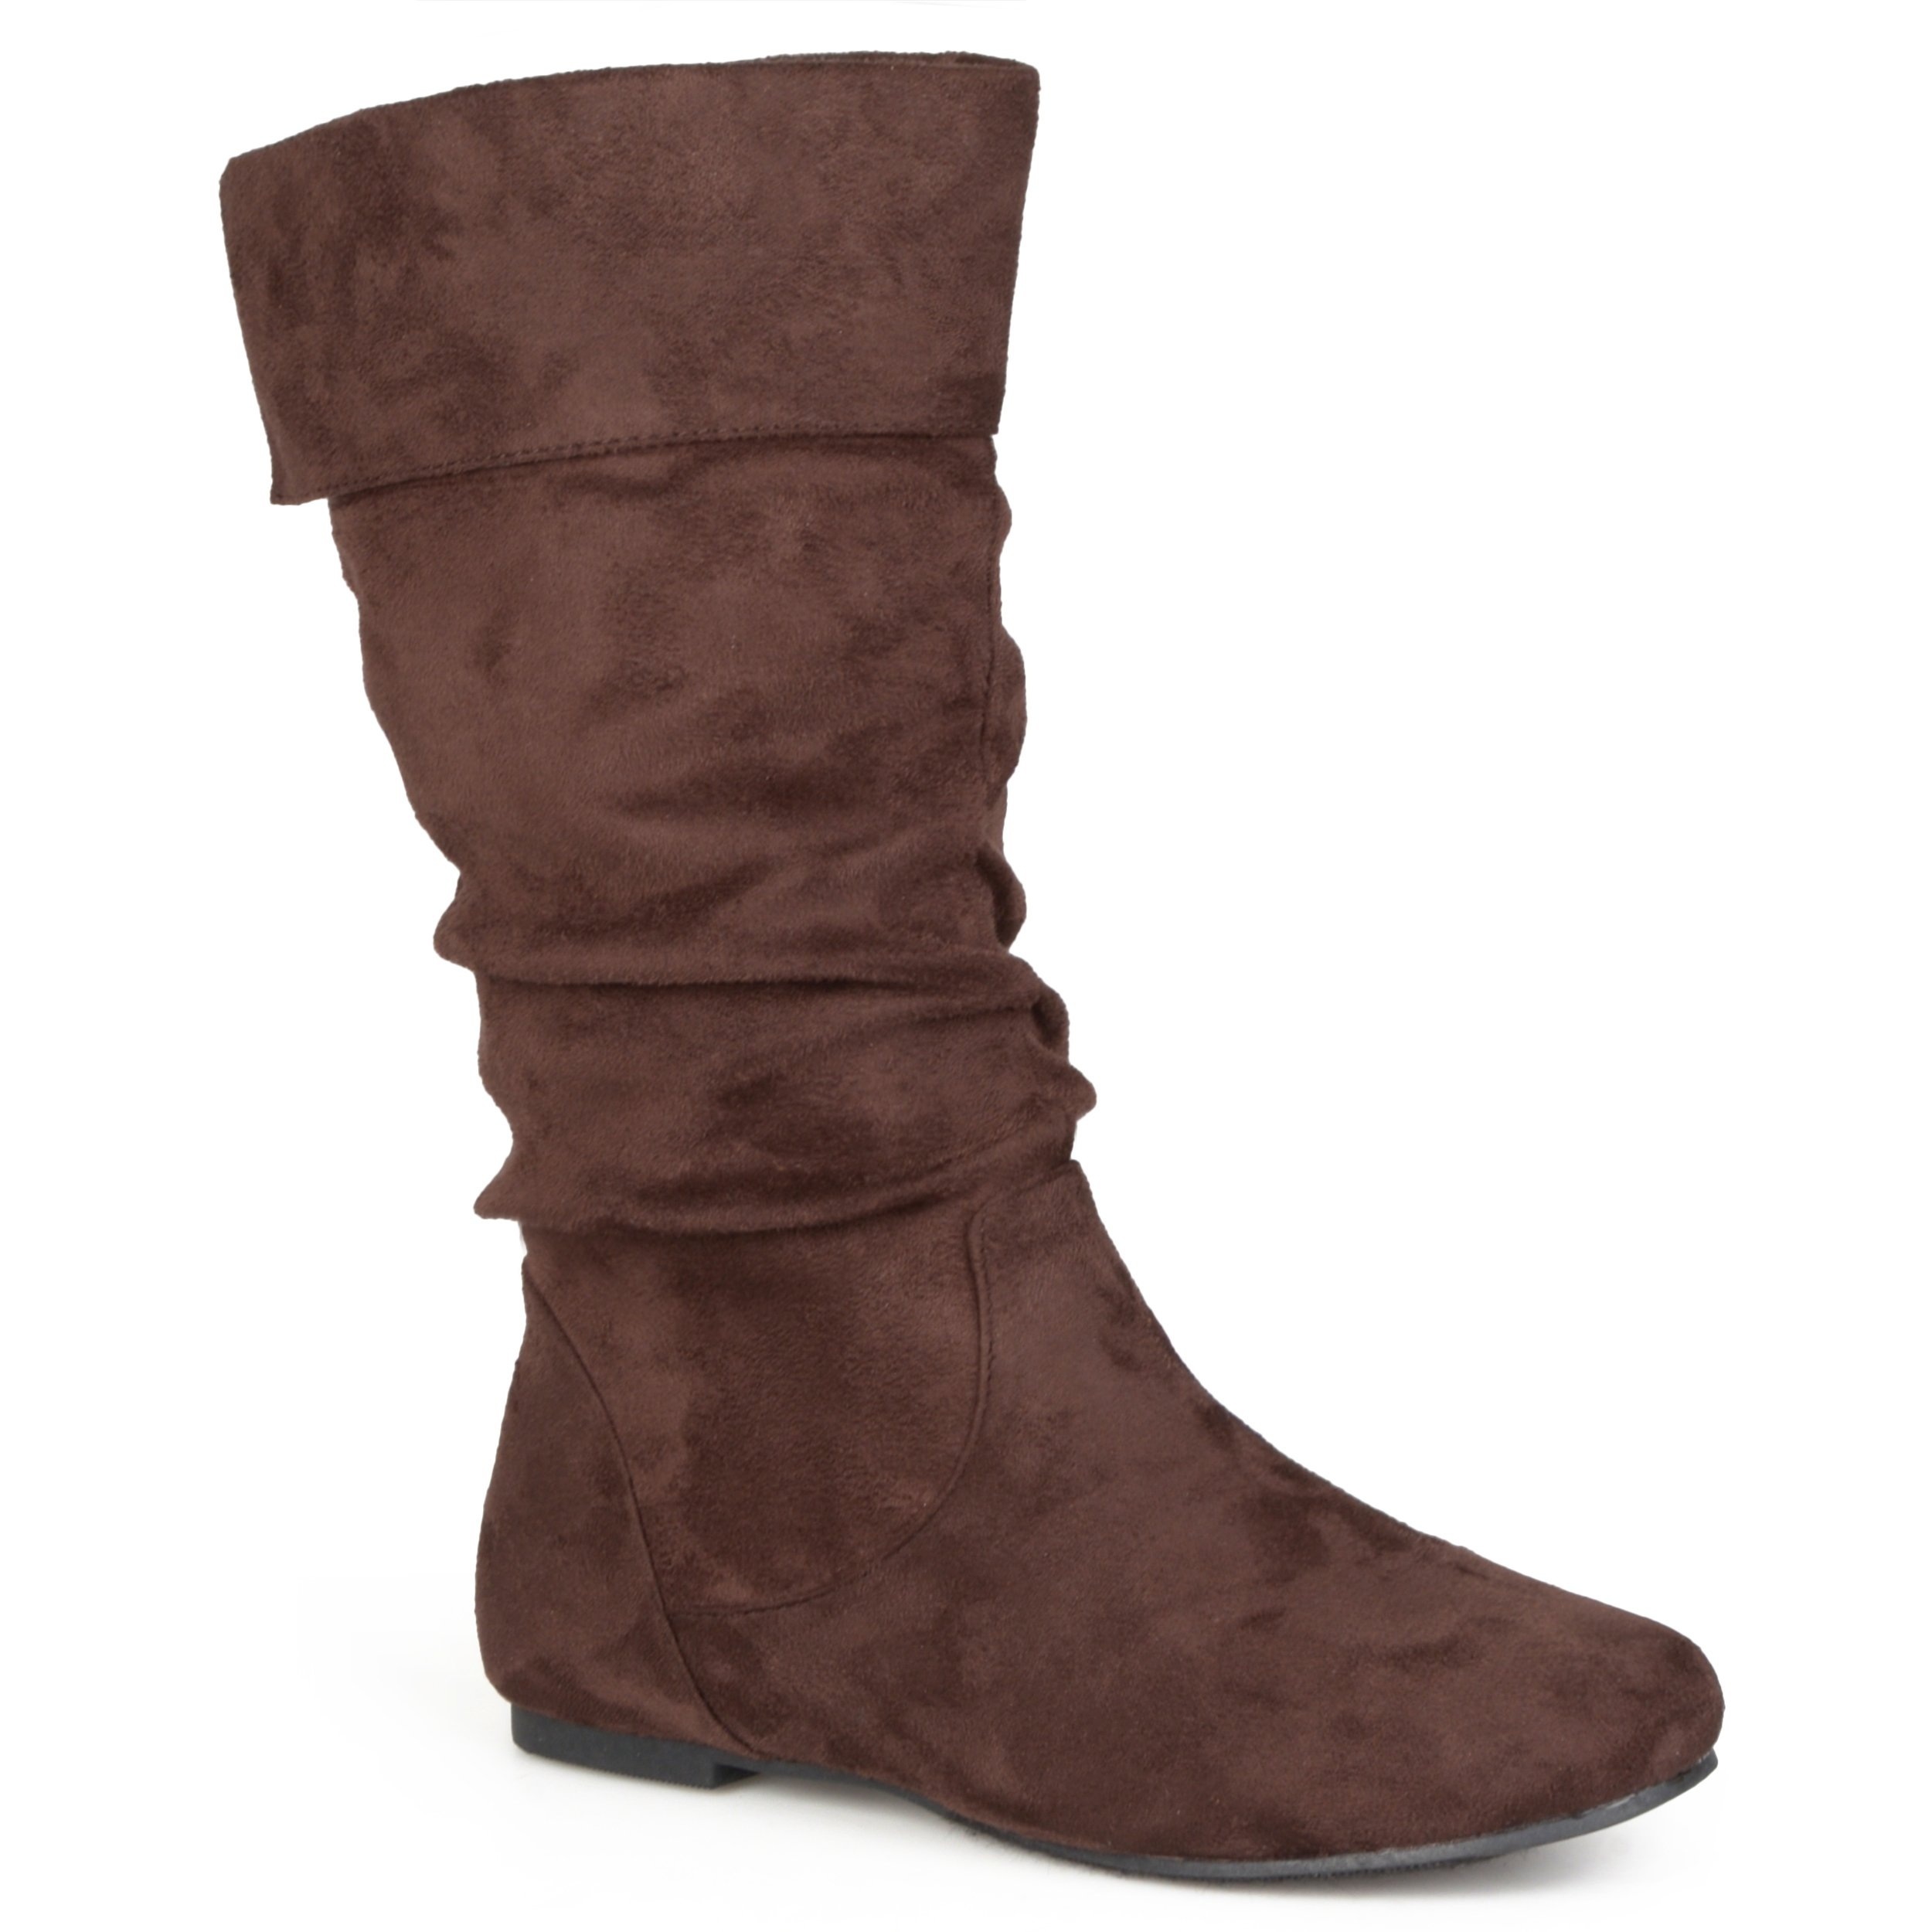 Journee Collection Womens Slouch Mid-Calf Microsuede Boots Brown, 8 Regular US